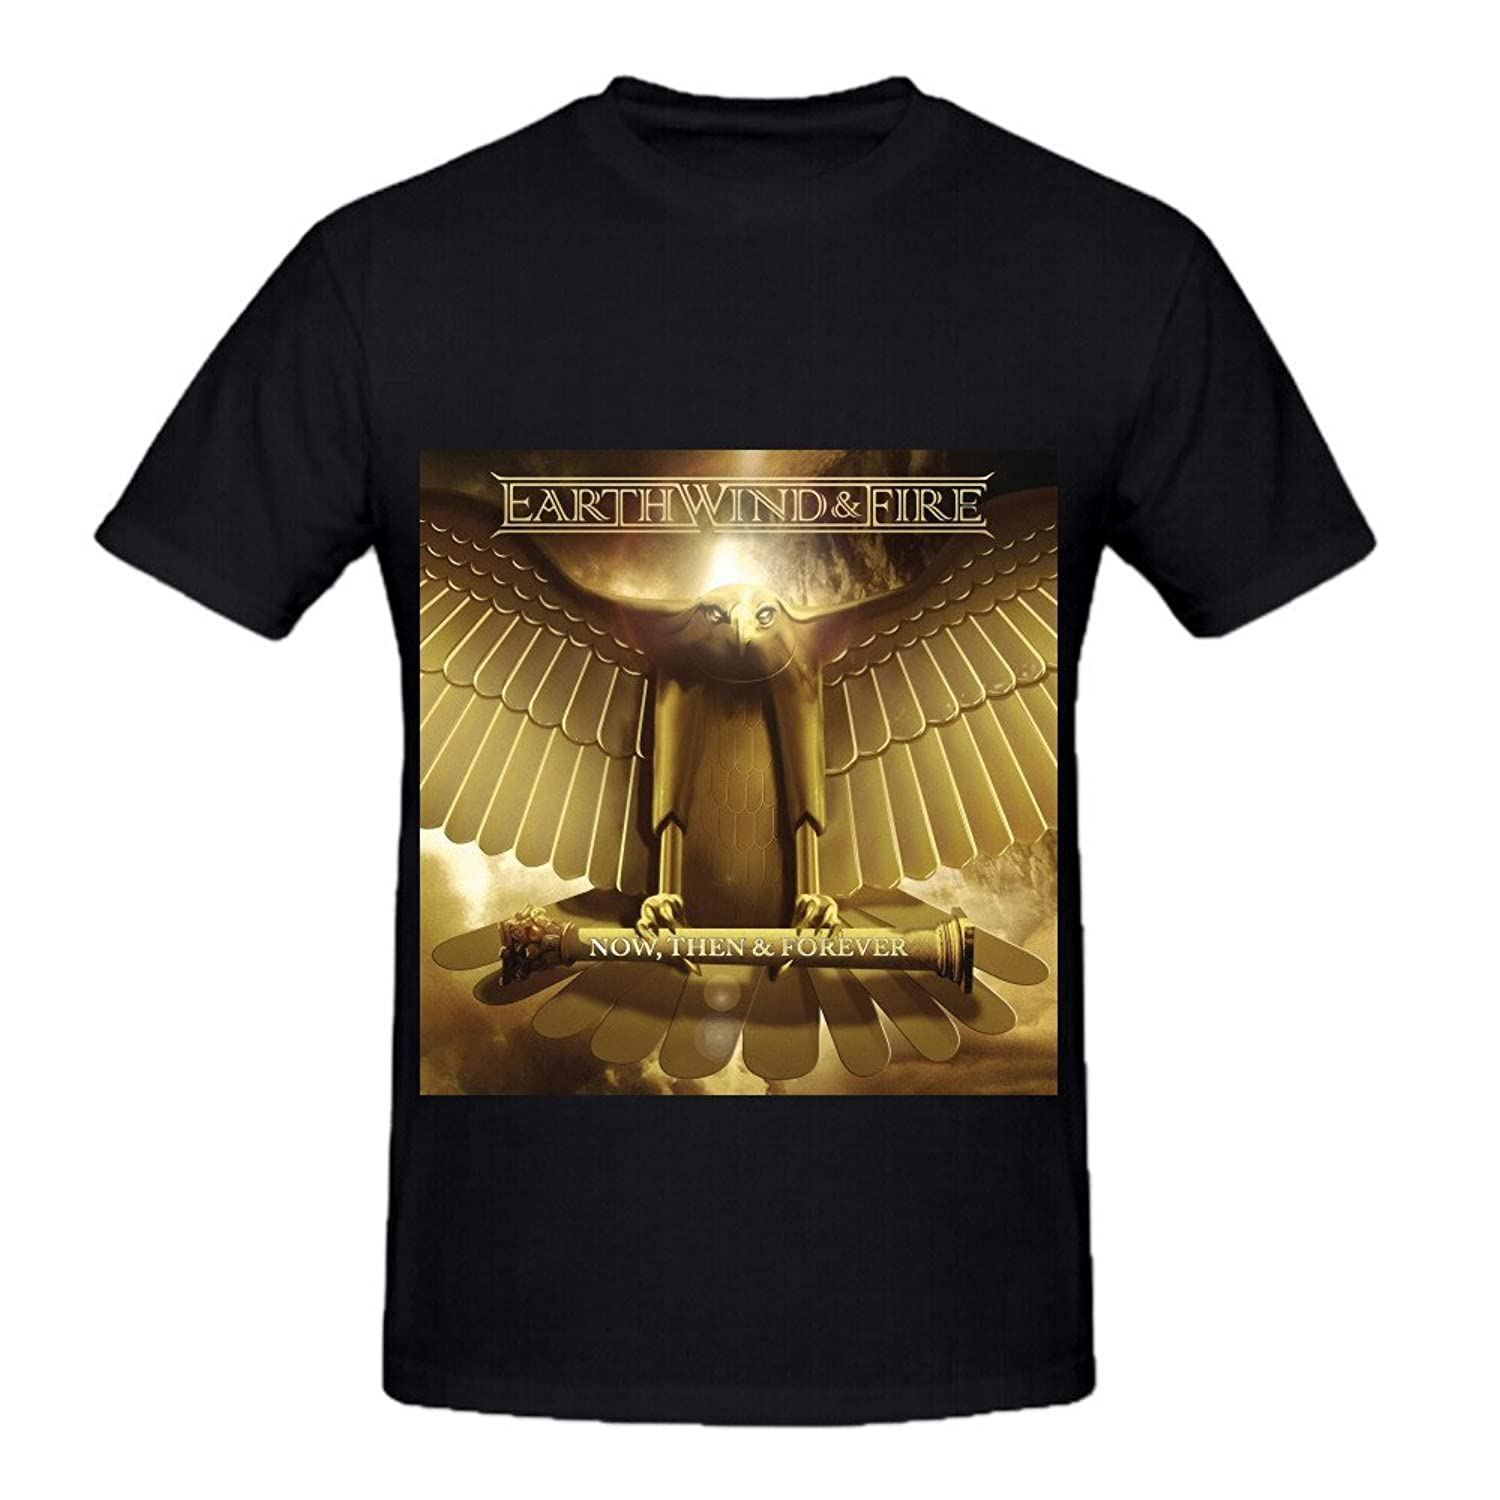 Earth, Wind Now, Then & Forever Men O Neck Custom Tee